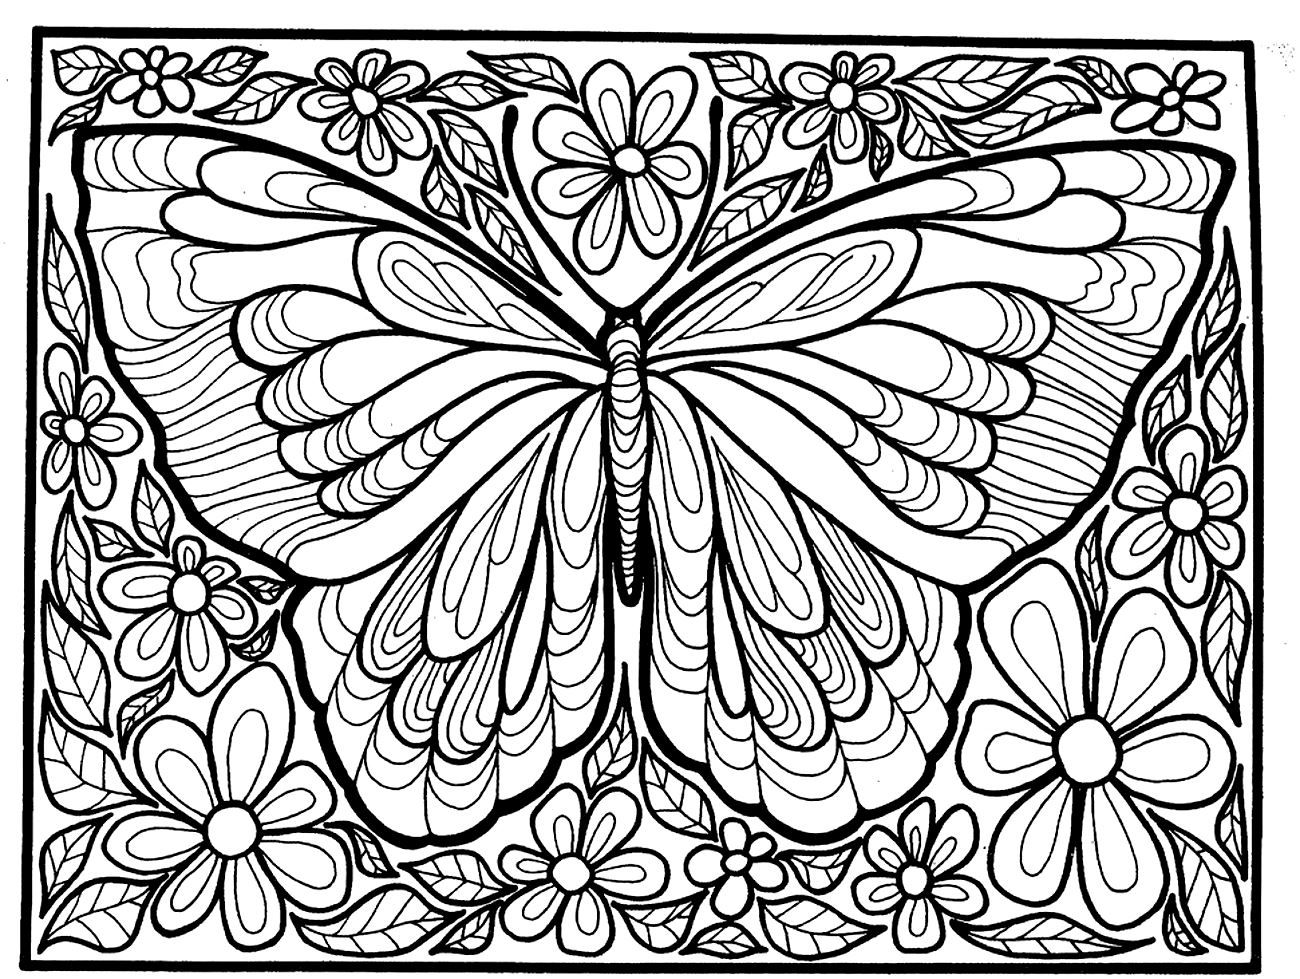 To Print This Free Coloring Page Adult Difficult Big Butterfly